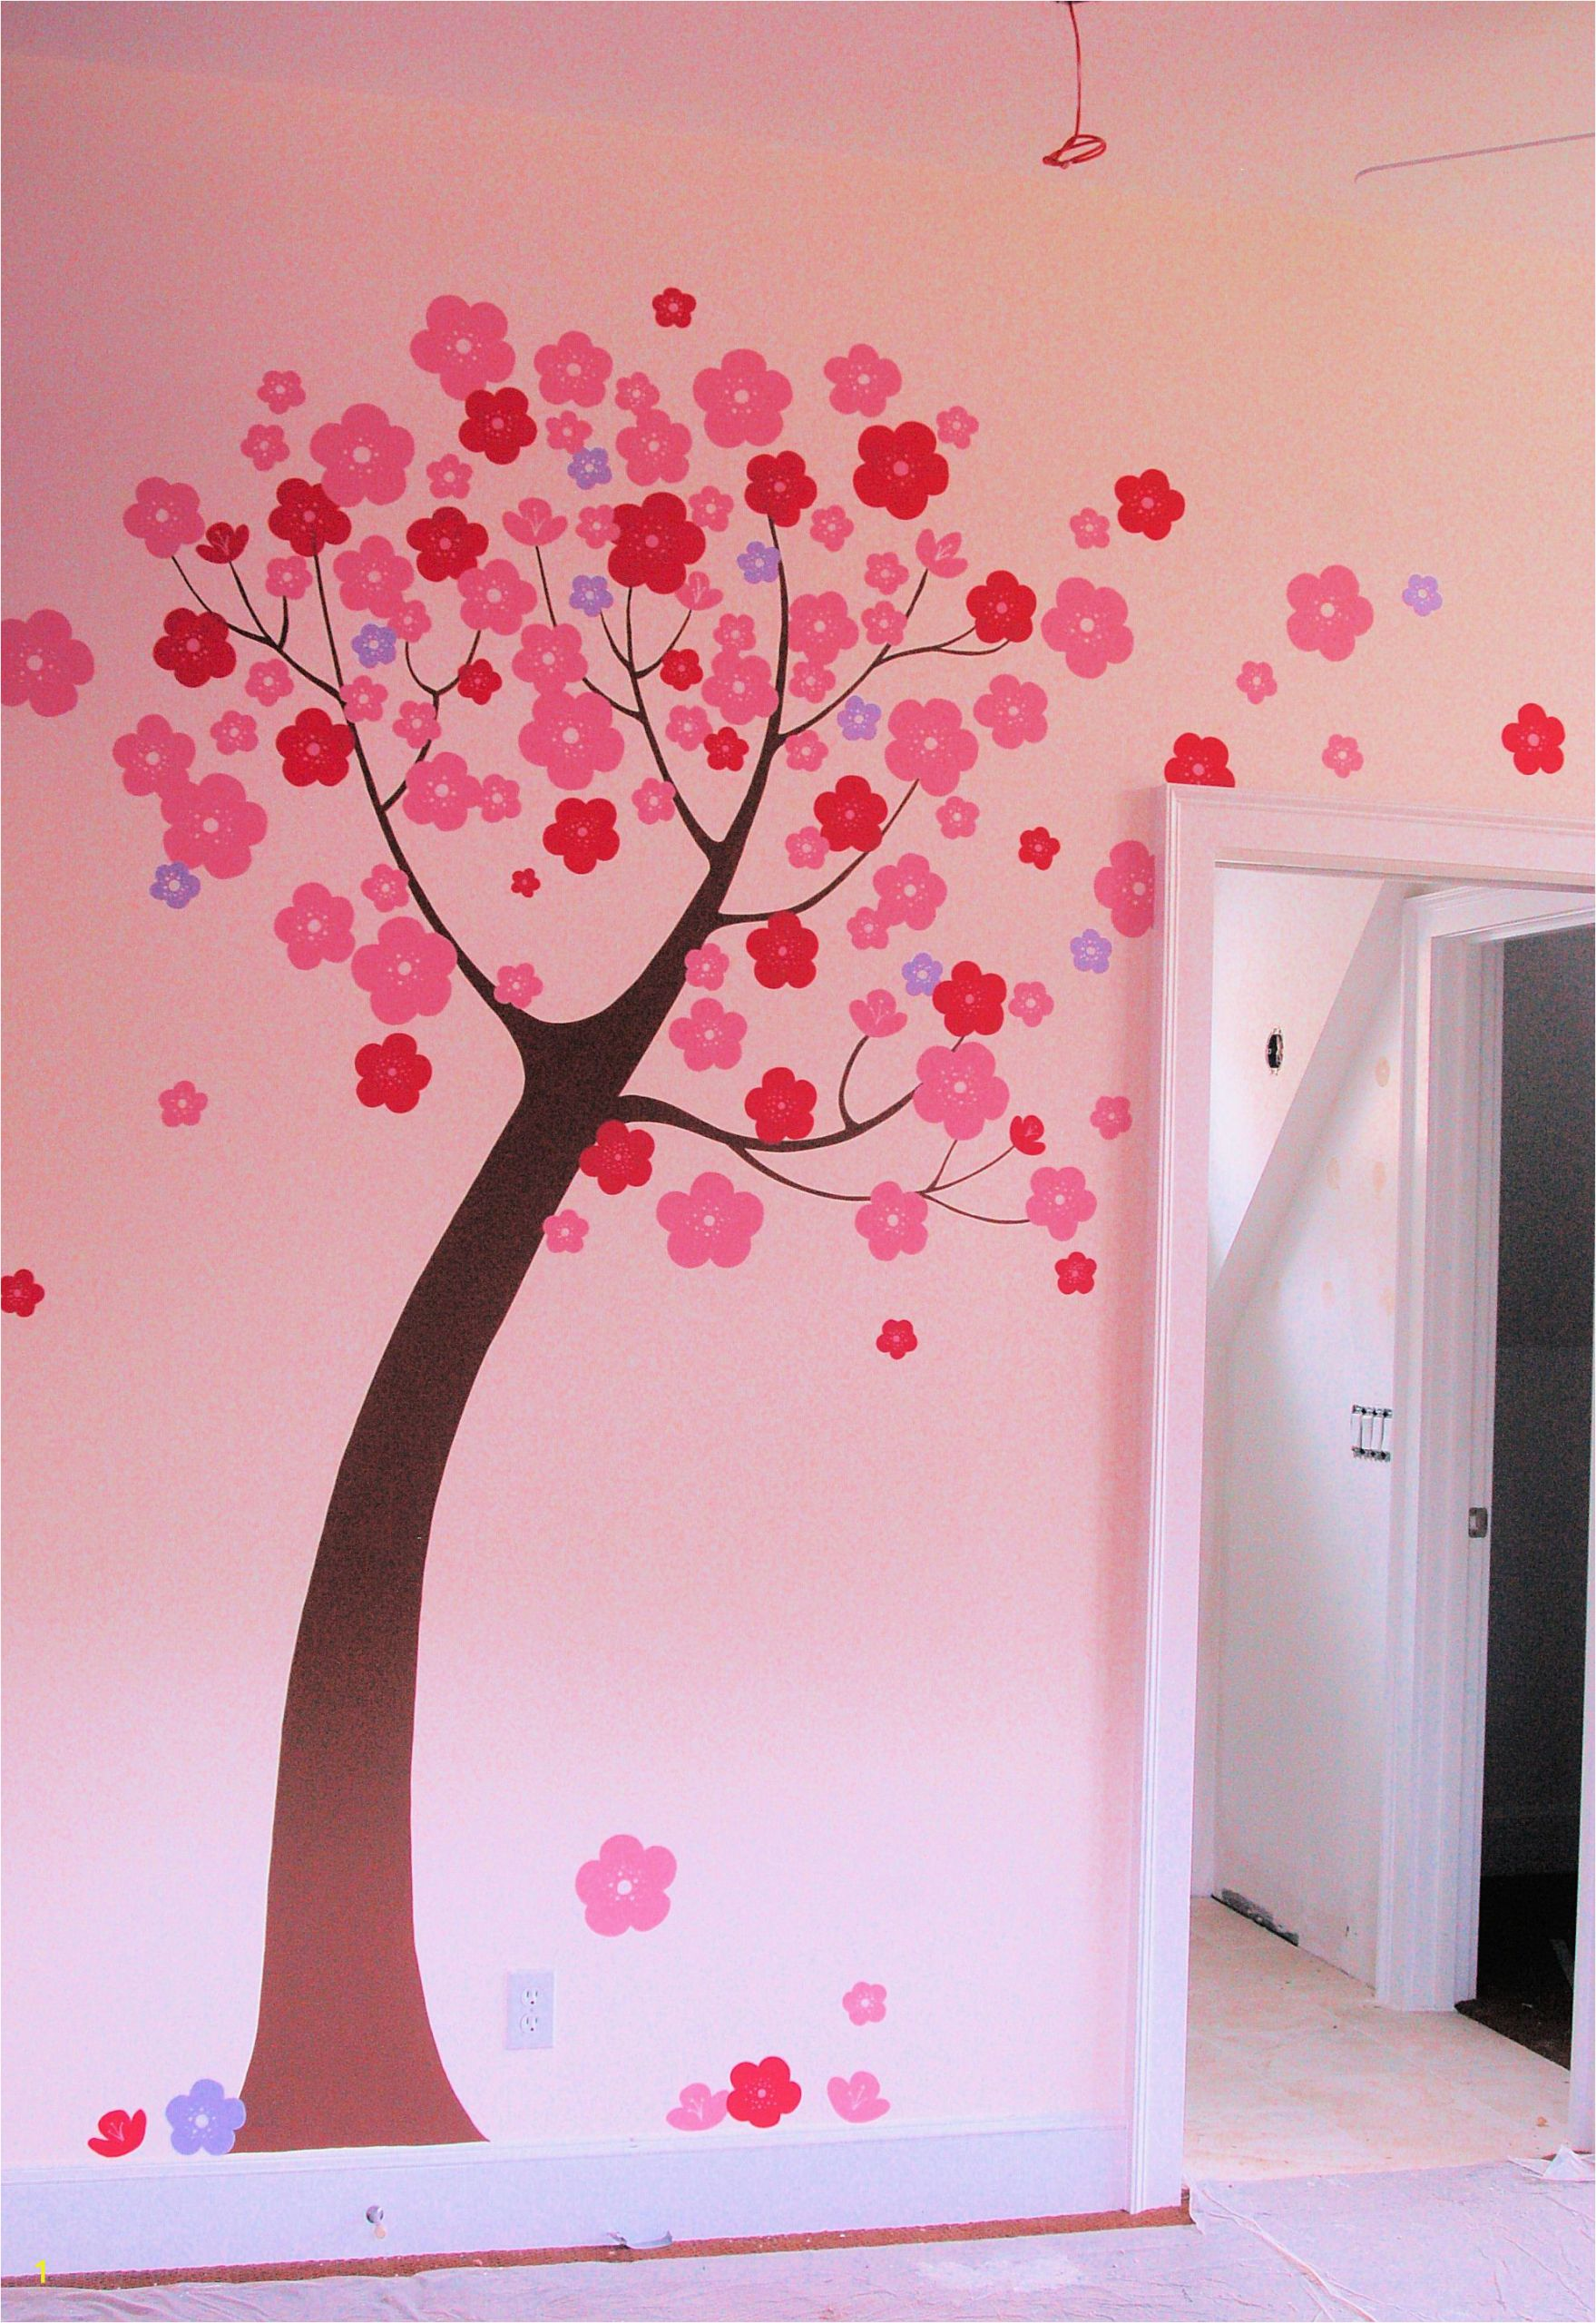 Hand Painted Bedroom Wall Murals Hand Painted Stylized Tree Mural In Children S Room by Renee